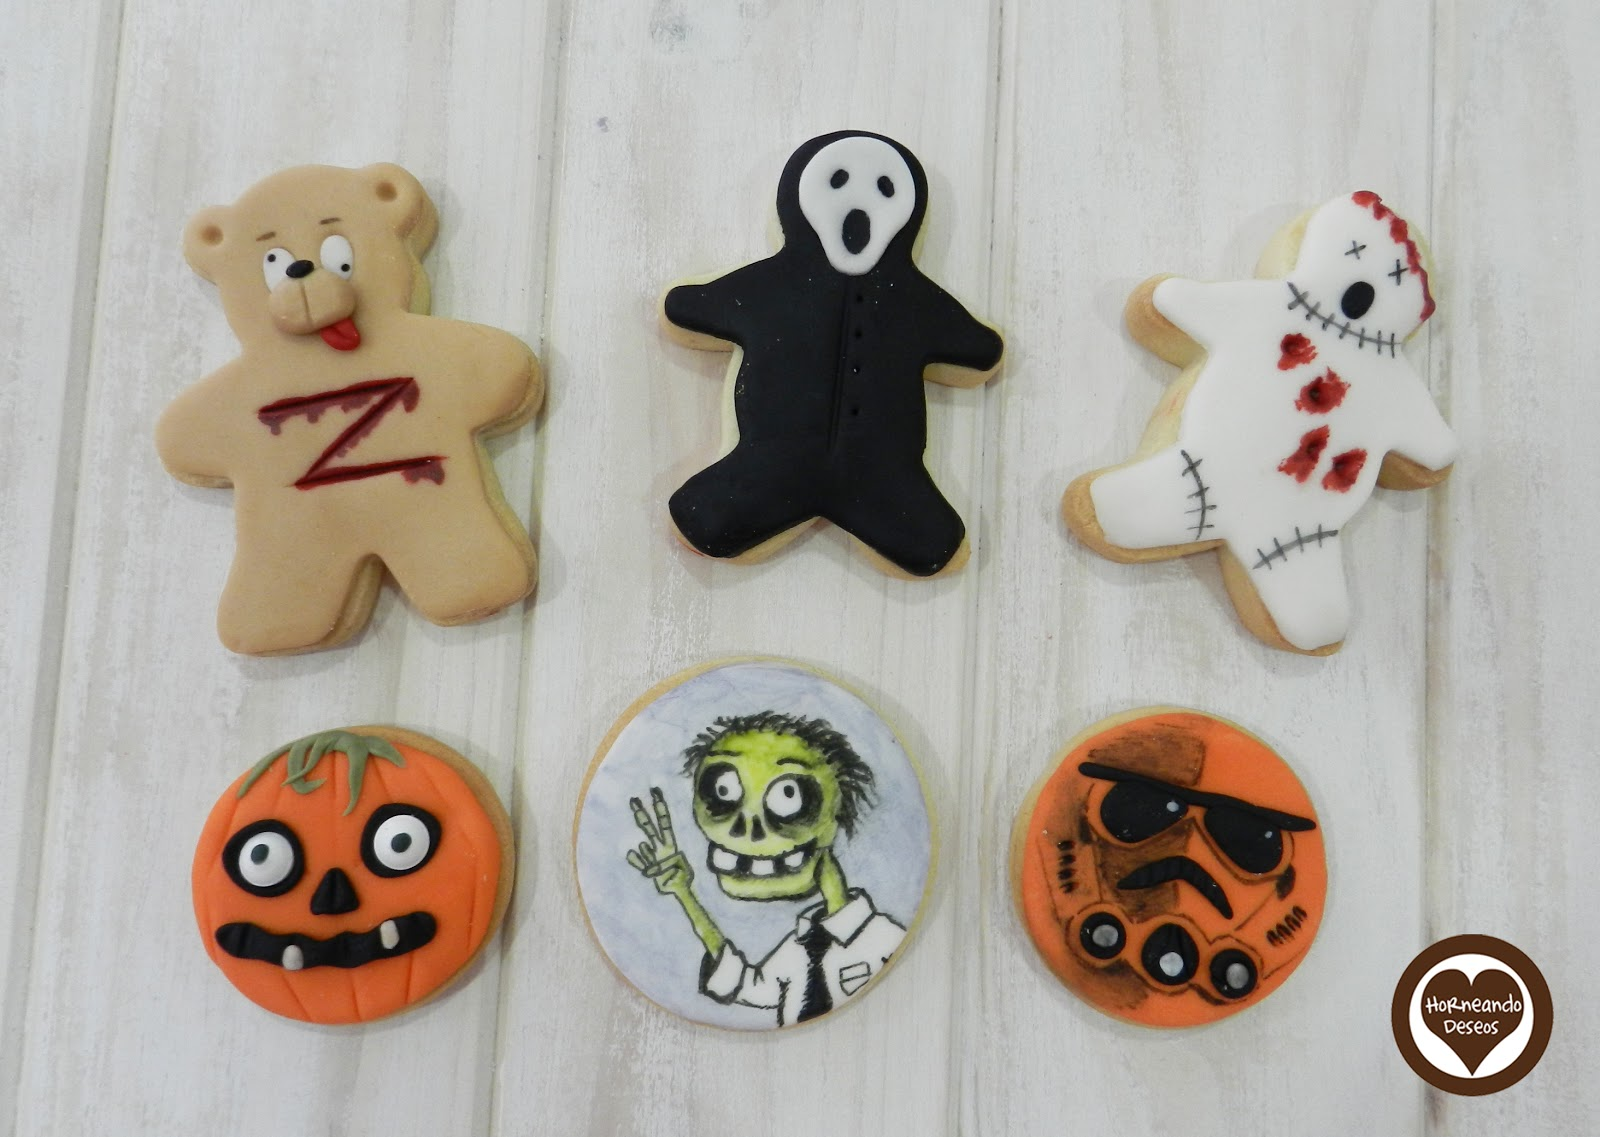 Galletas Decoradas Hallowen Cupcakes Monstruosos Y Galletas Para Halloween